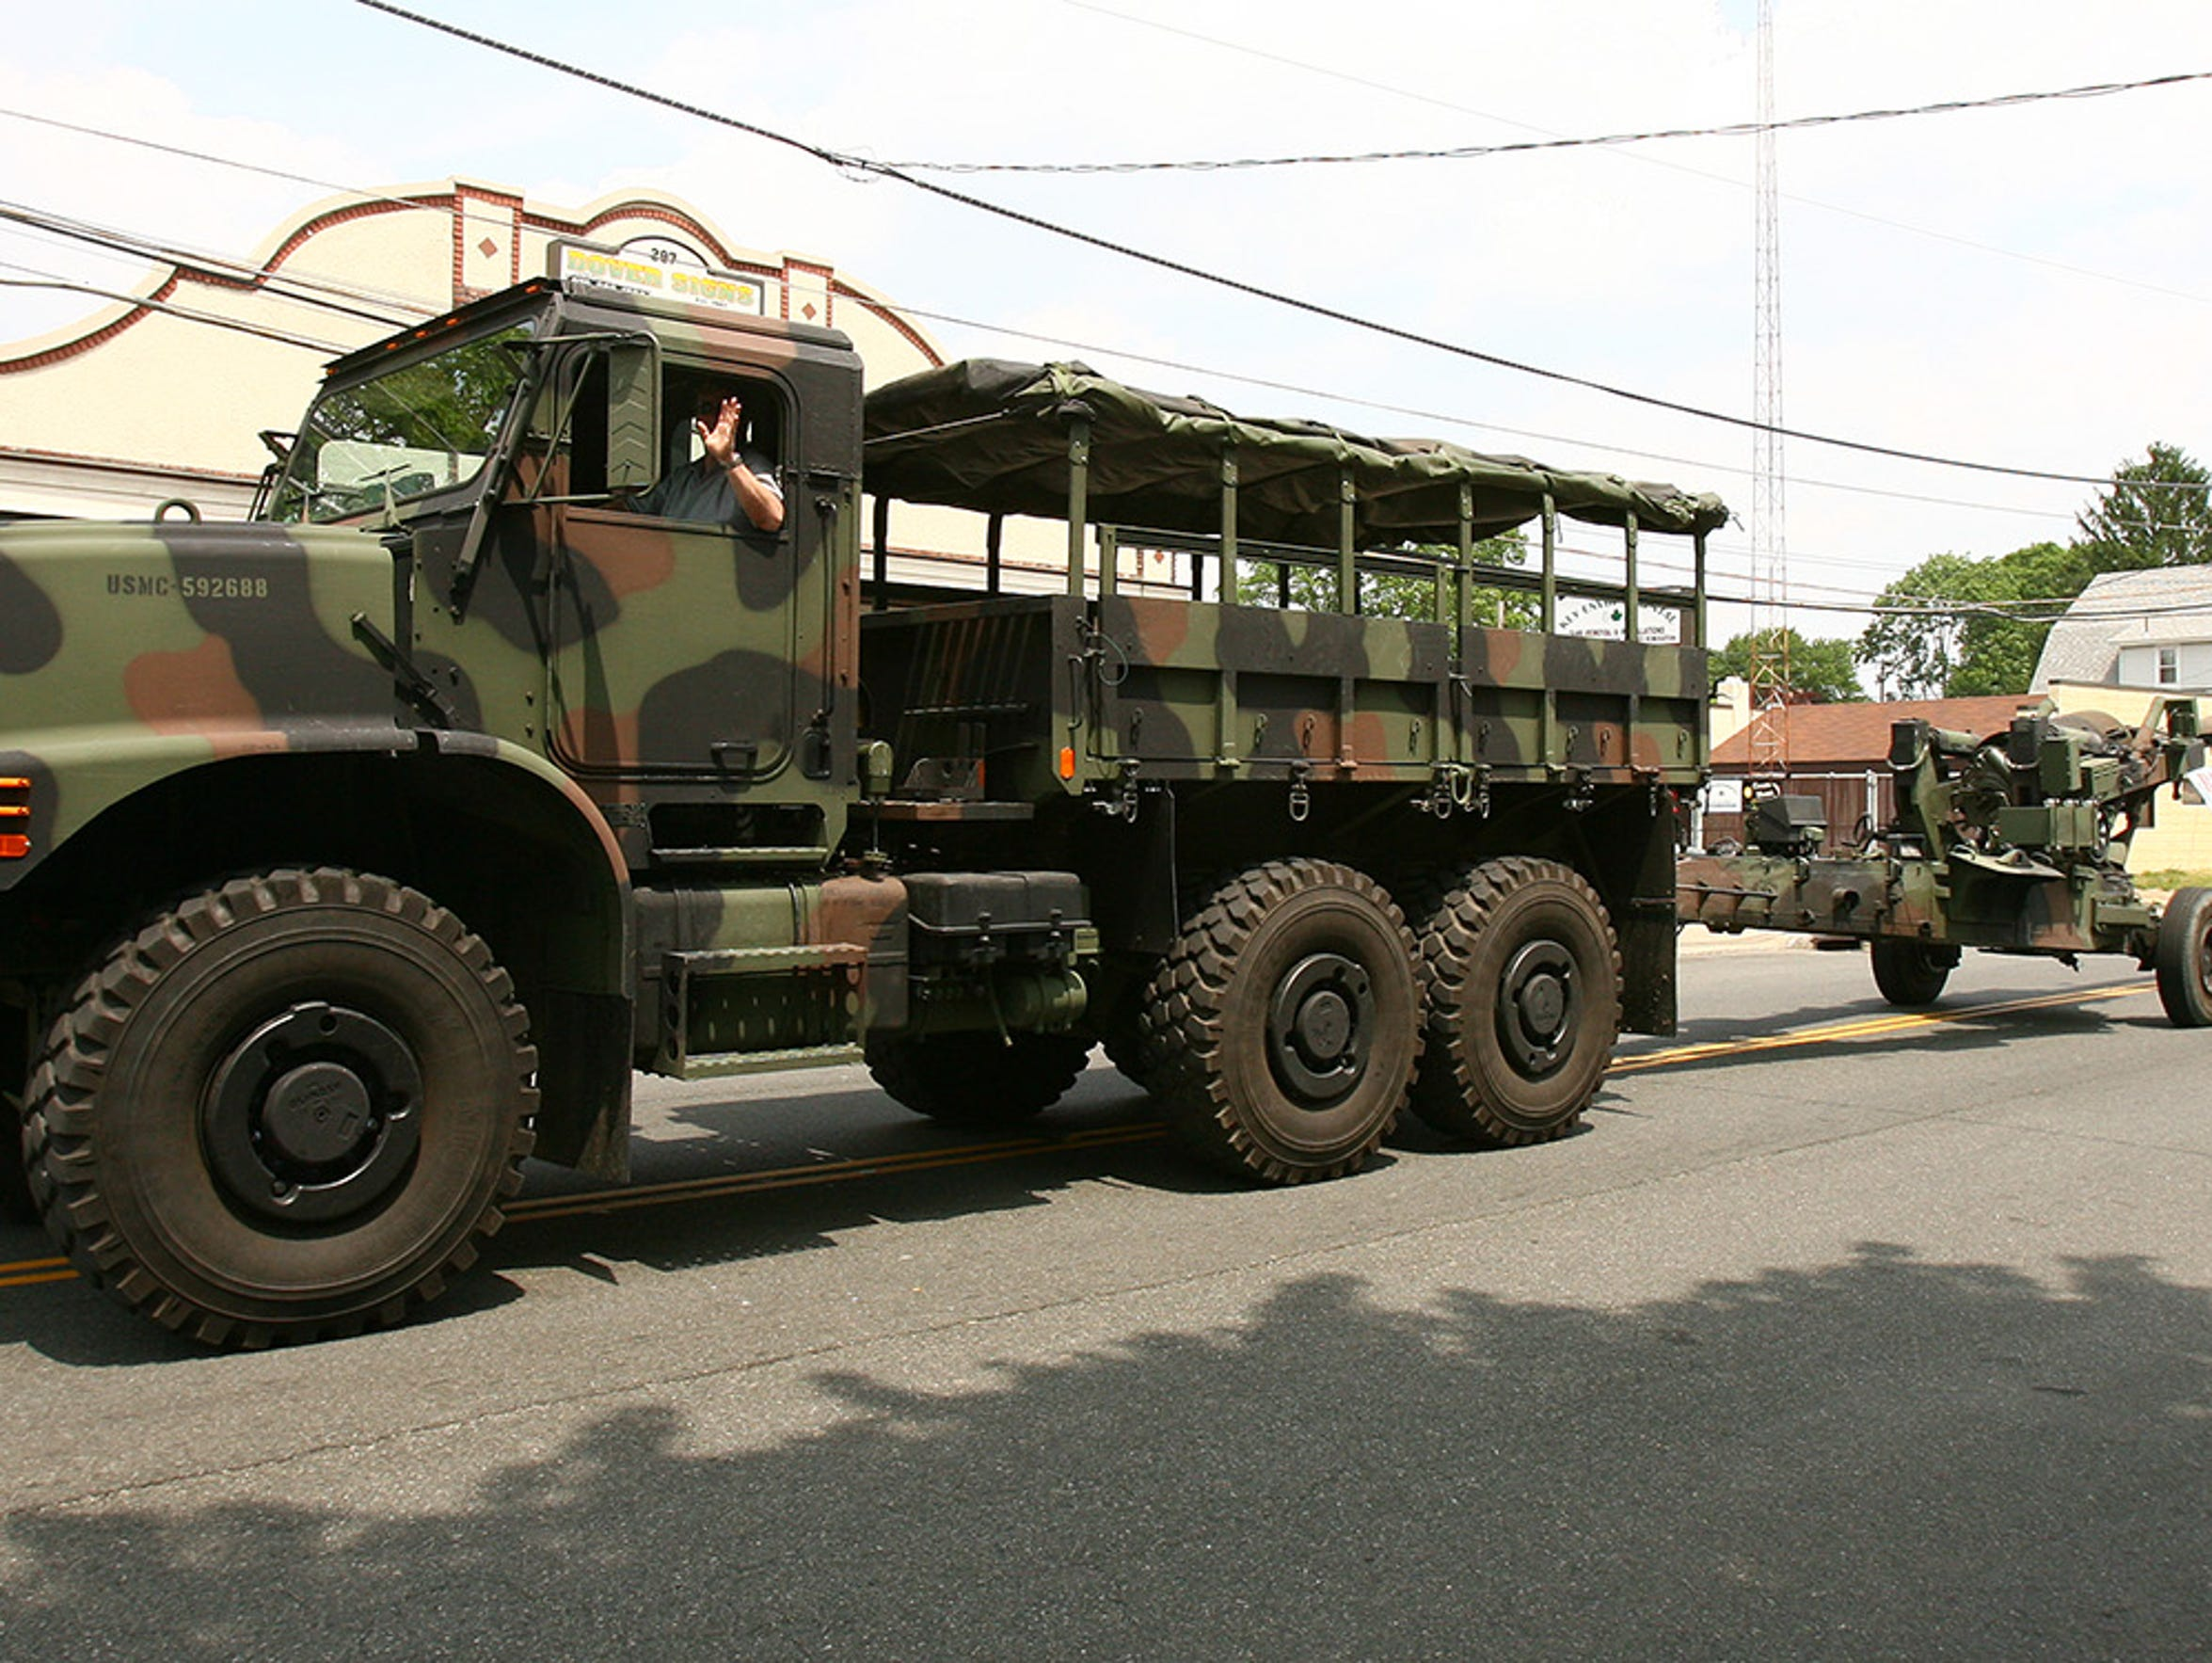 A military truck towing artillery from Picatinny Arsenal